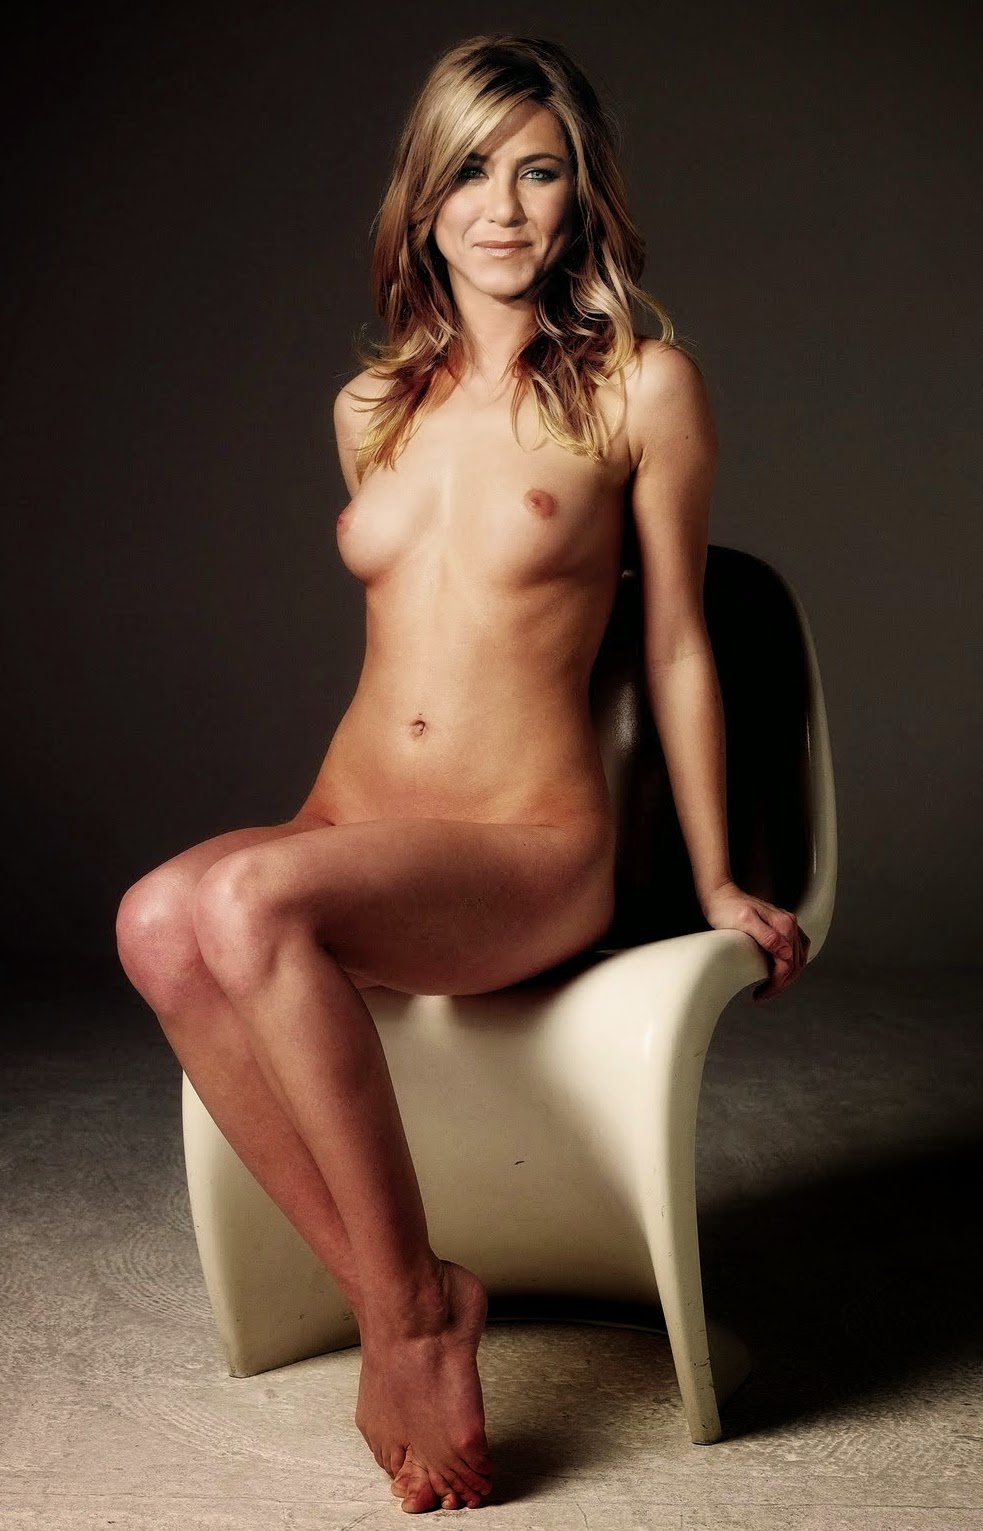 jennifer-aniston-nude-choc-sex-naked-girls-strapon